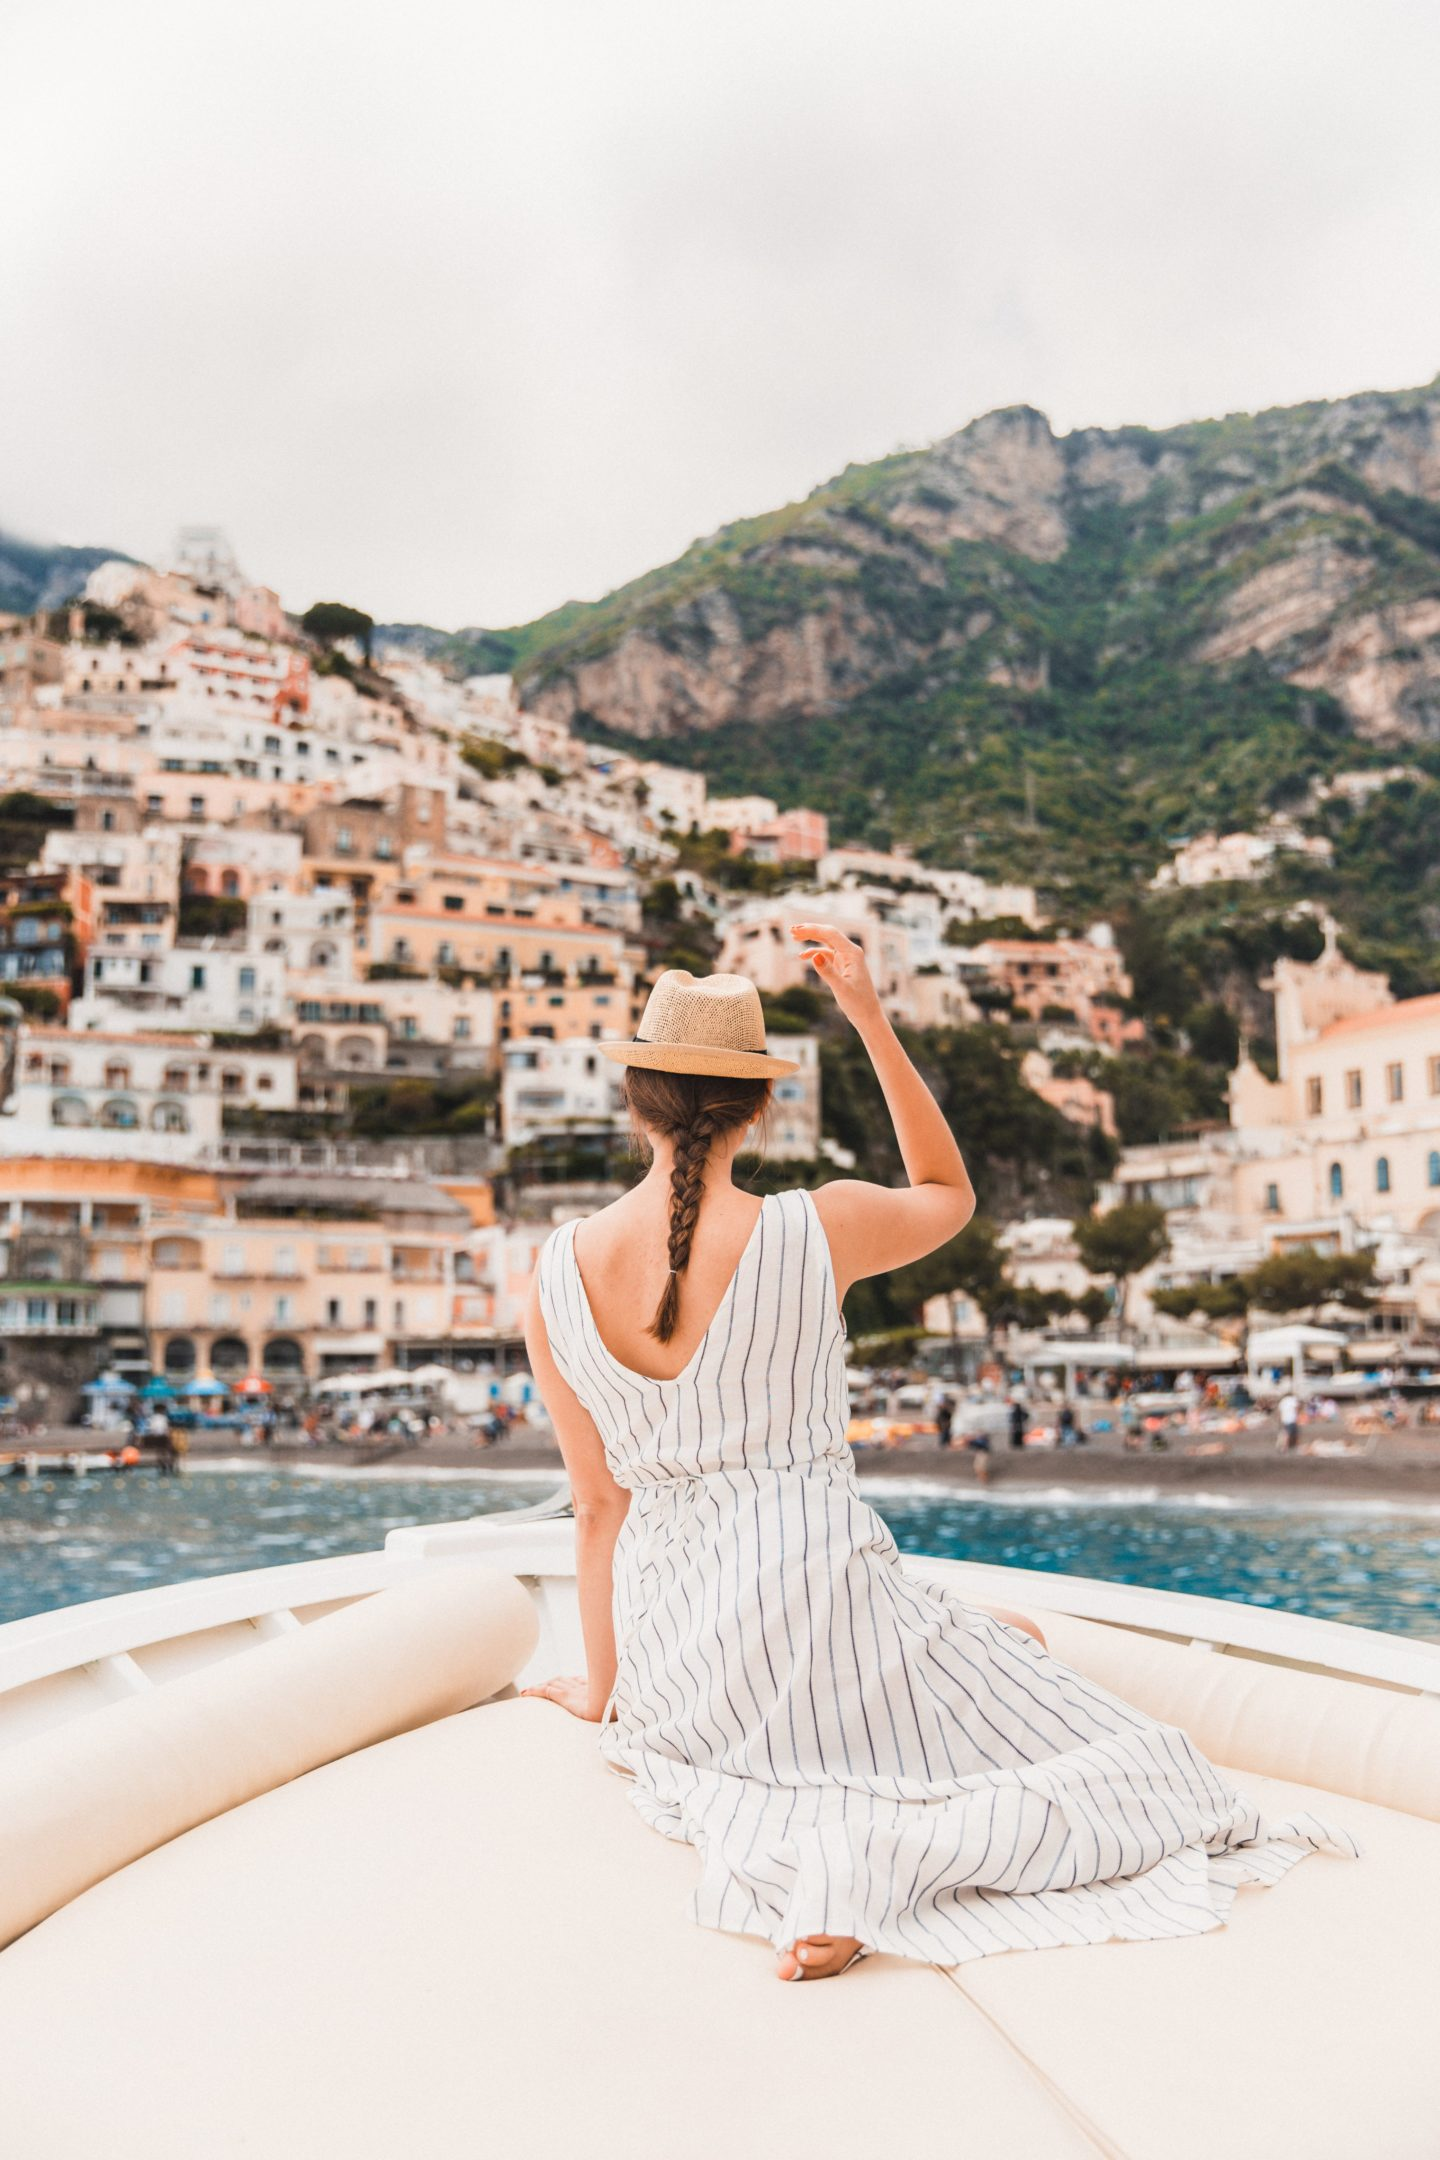 The Best Positano Instagram Shots | 12 Beautiful Shots You Can't Miss: Amalfi Harbor